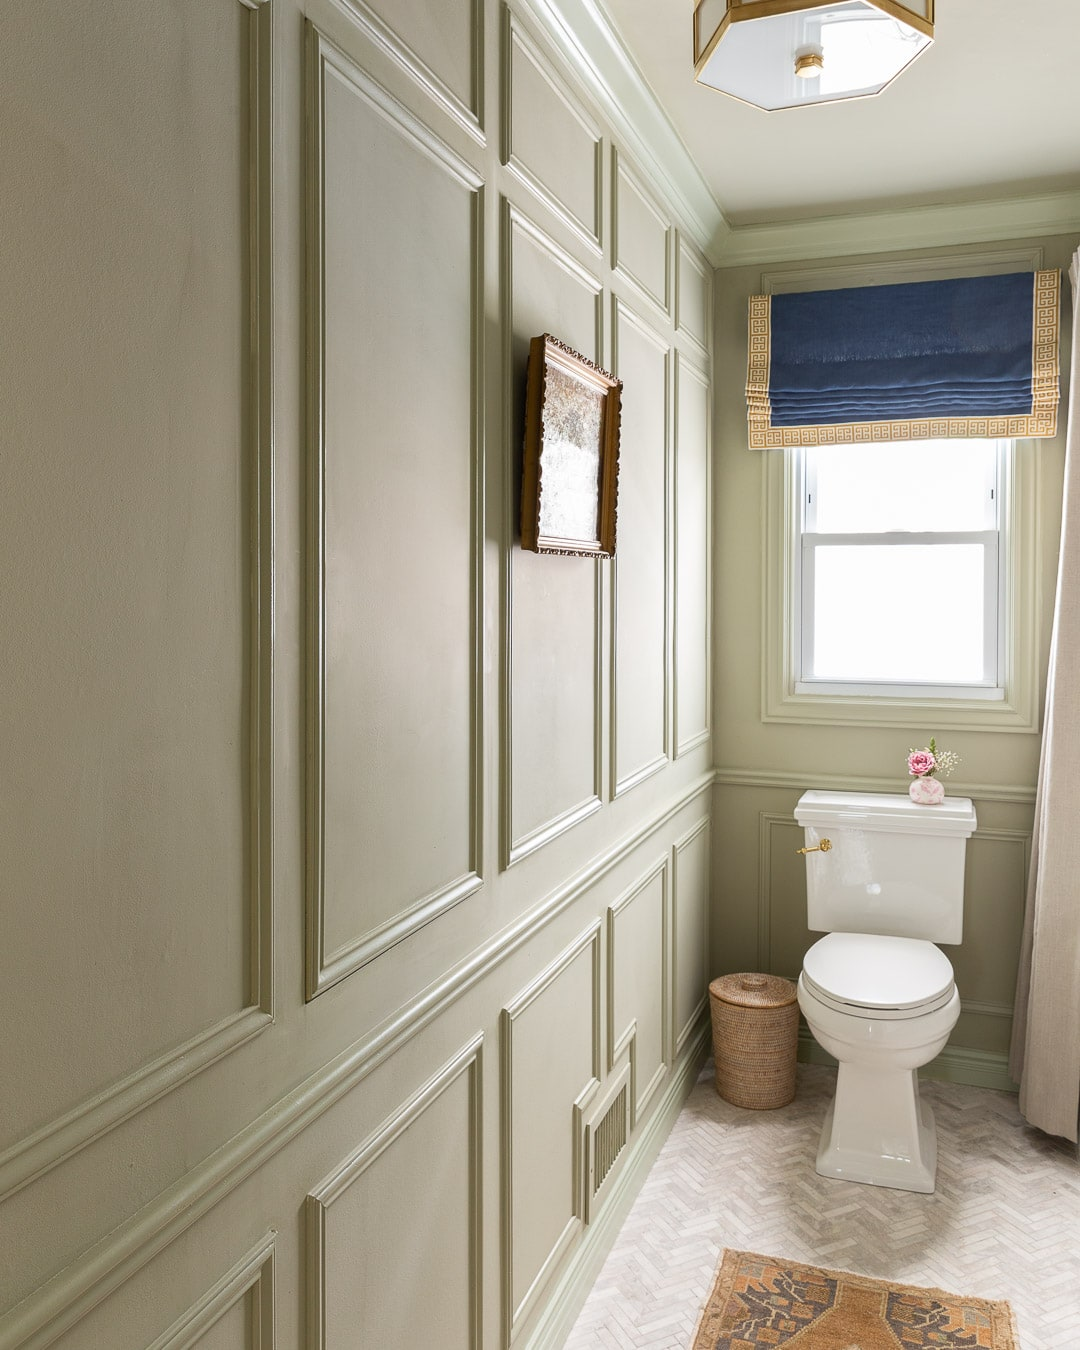 wall-molding-trimwork-crown-modern-traditional